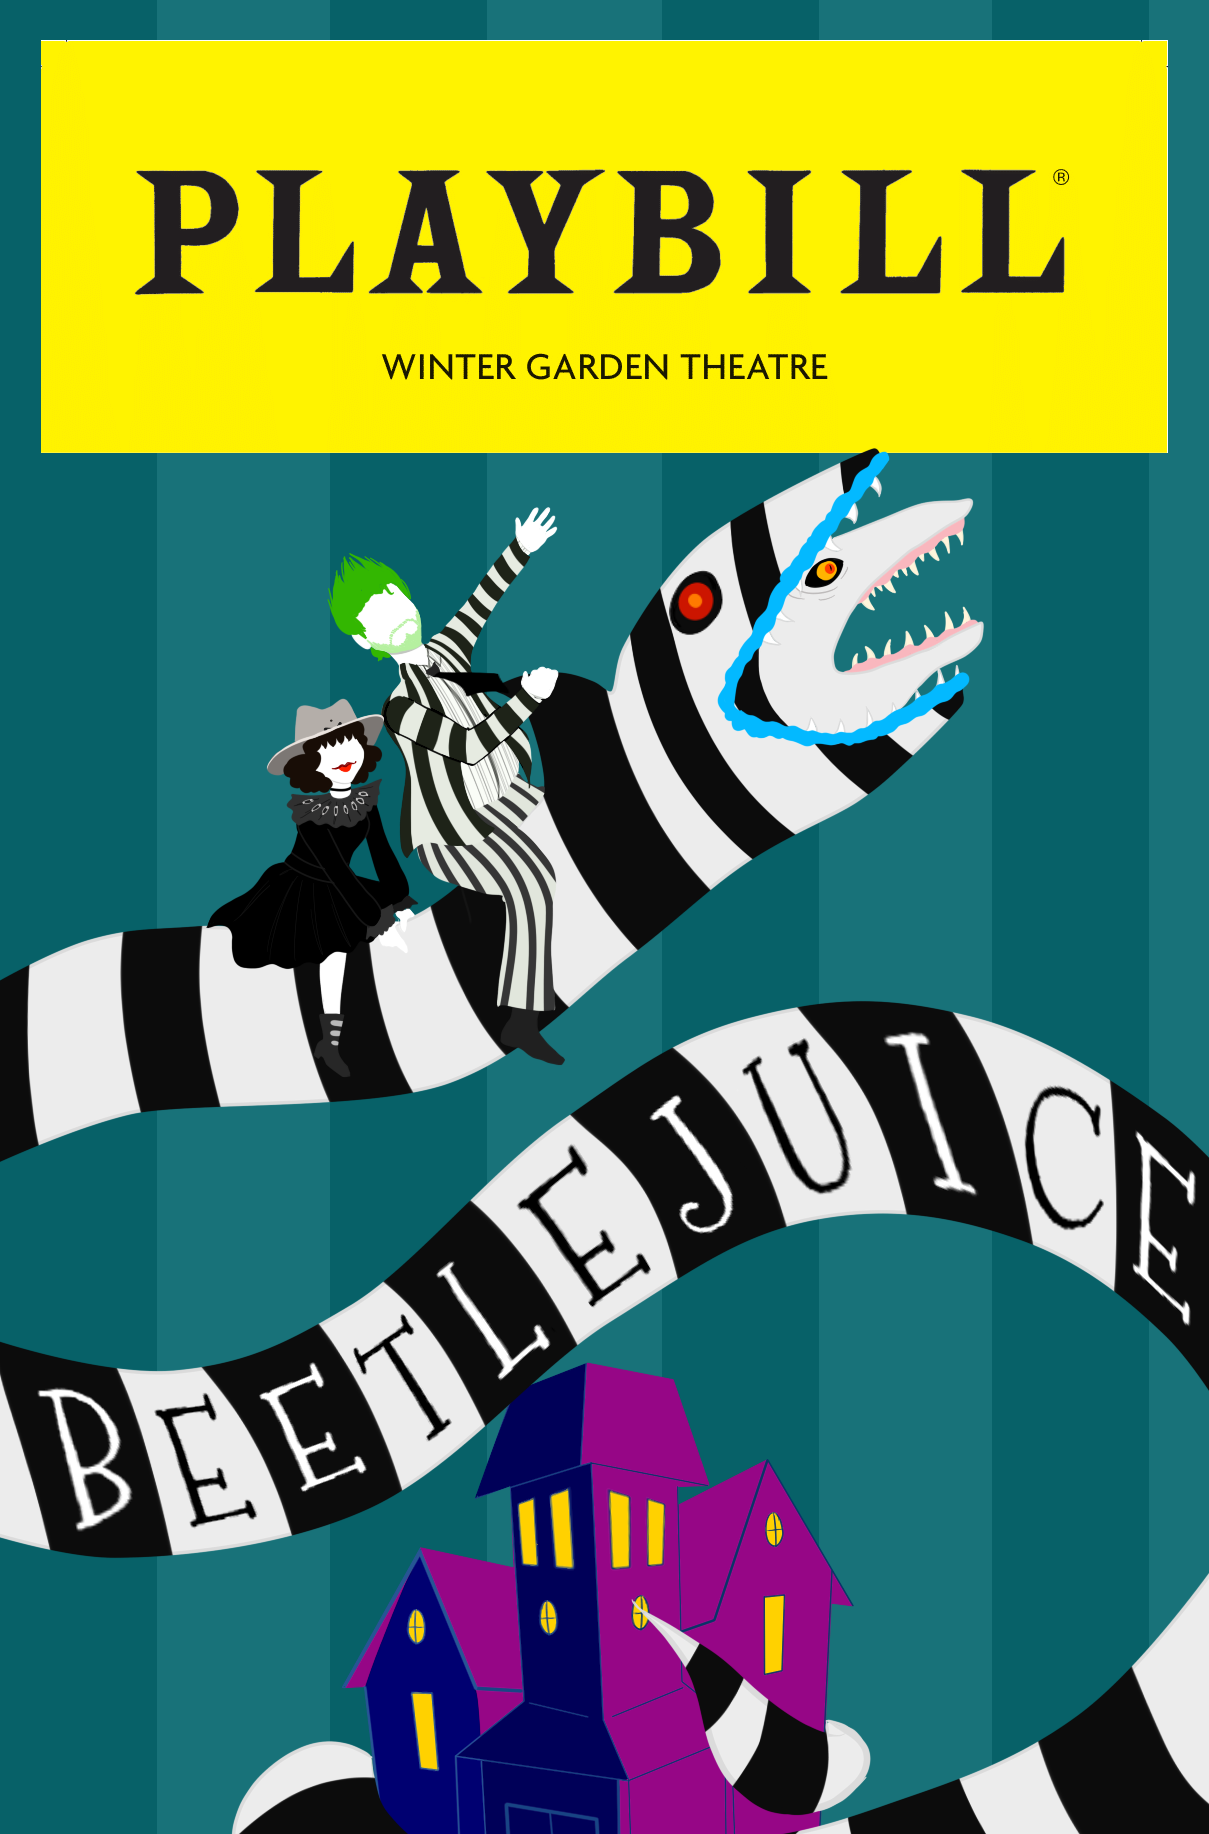 Beetlejuice Playbill Entry By Hampyhamps On Deviantart